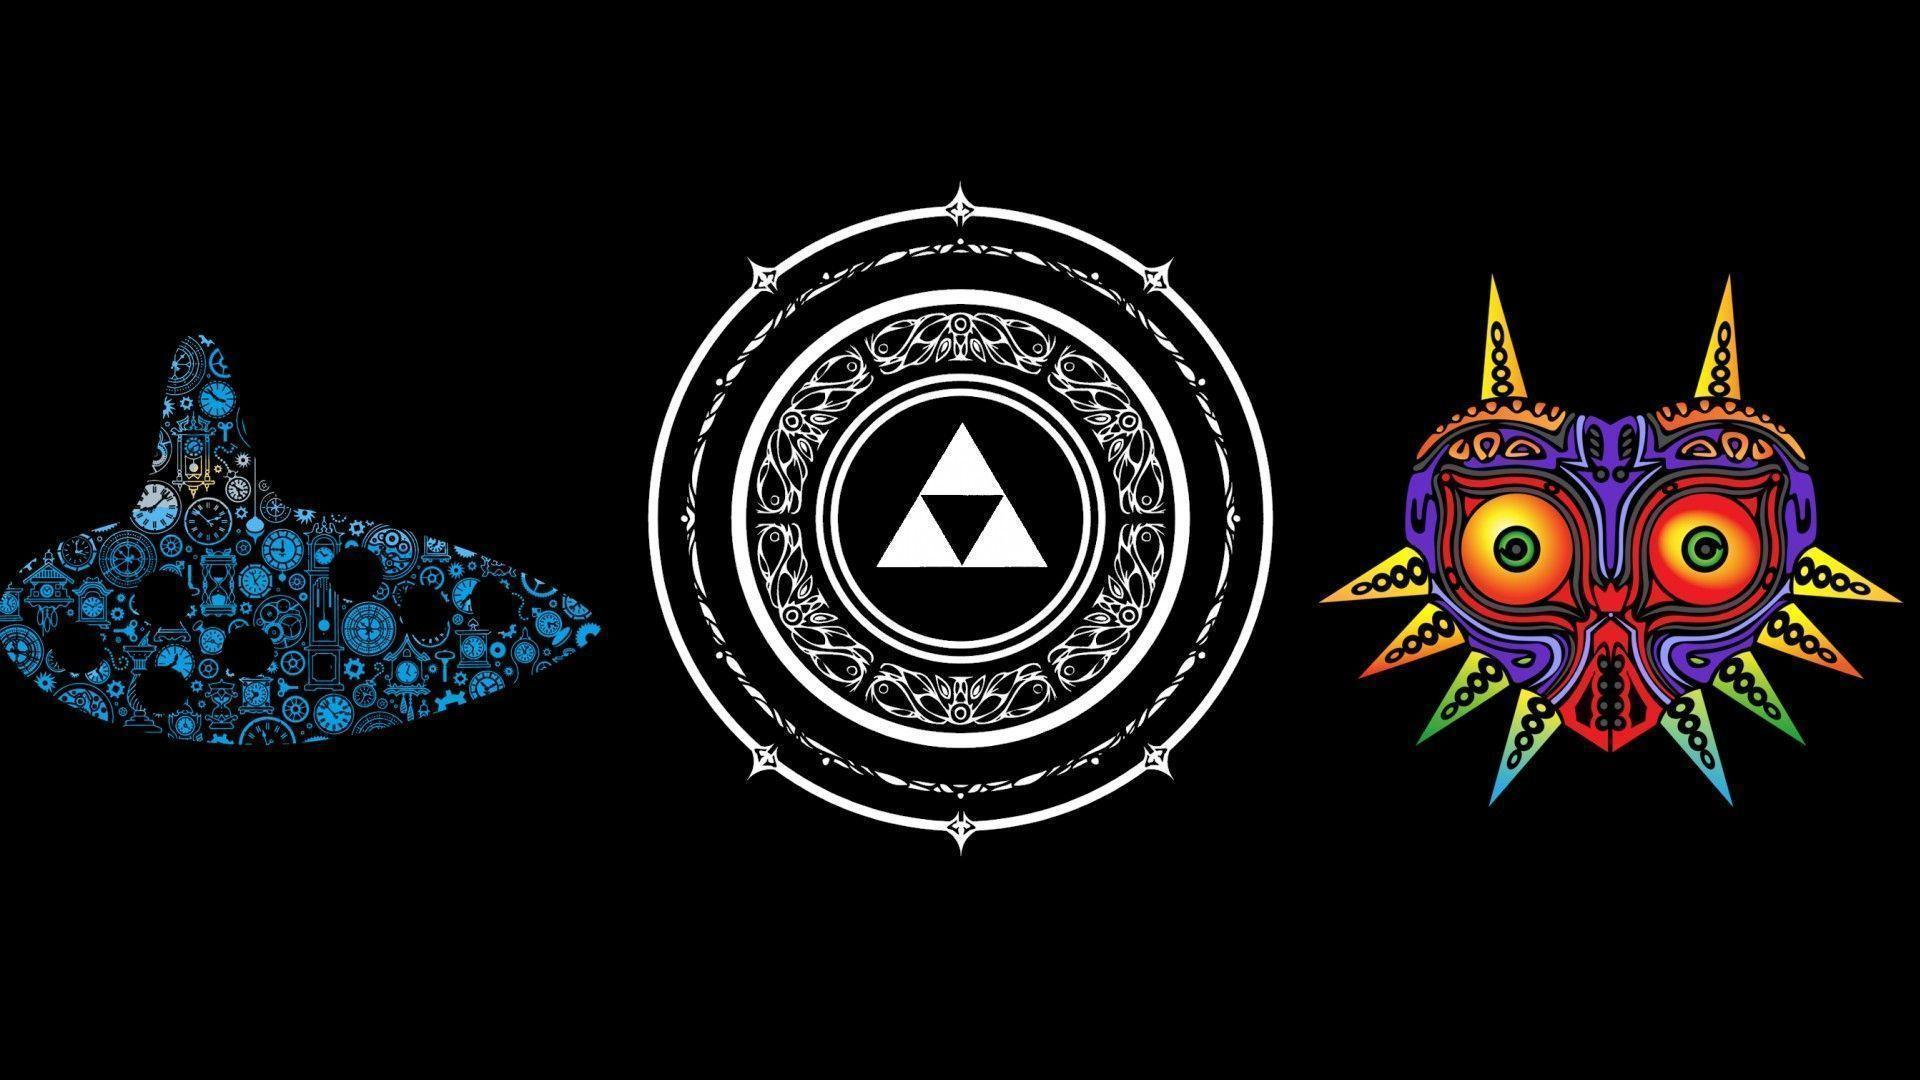 Majora S Mask Desktop Background: Legend Of Zelda Desktop Wallpapers